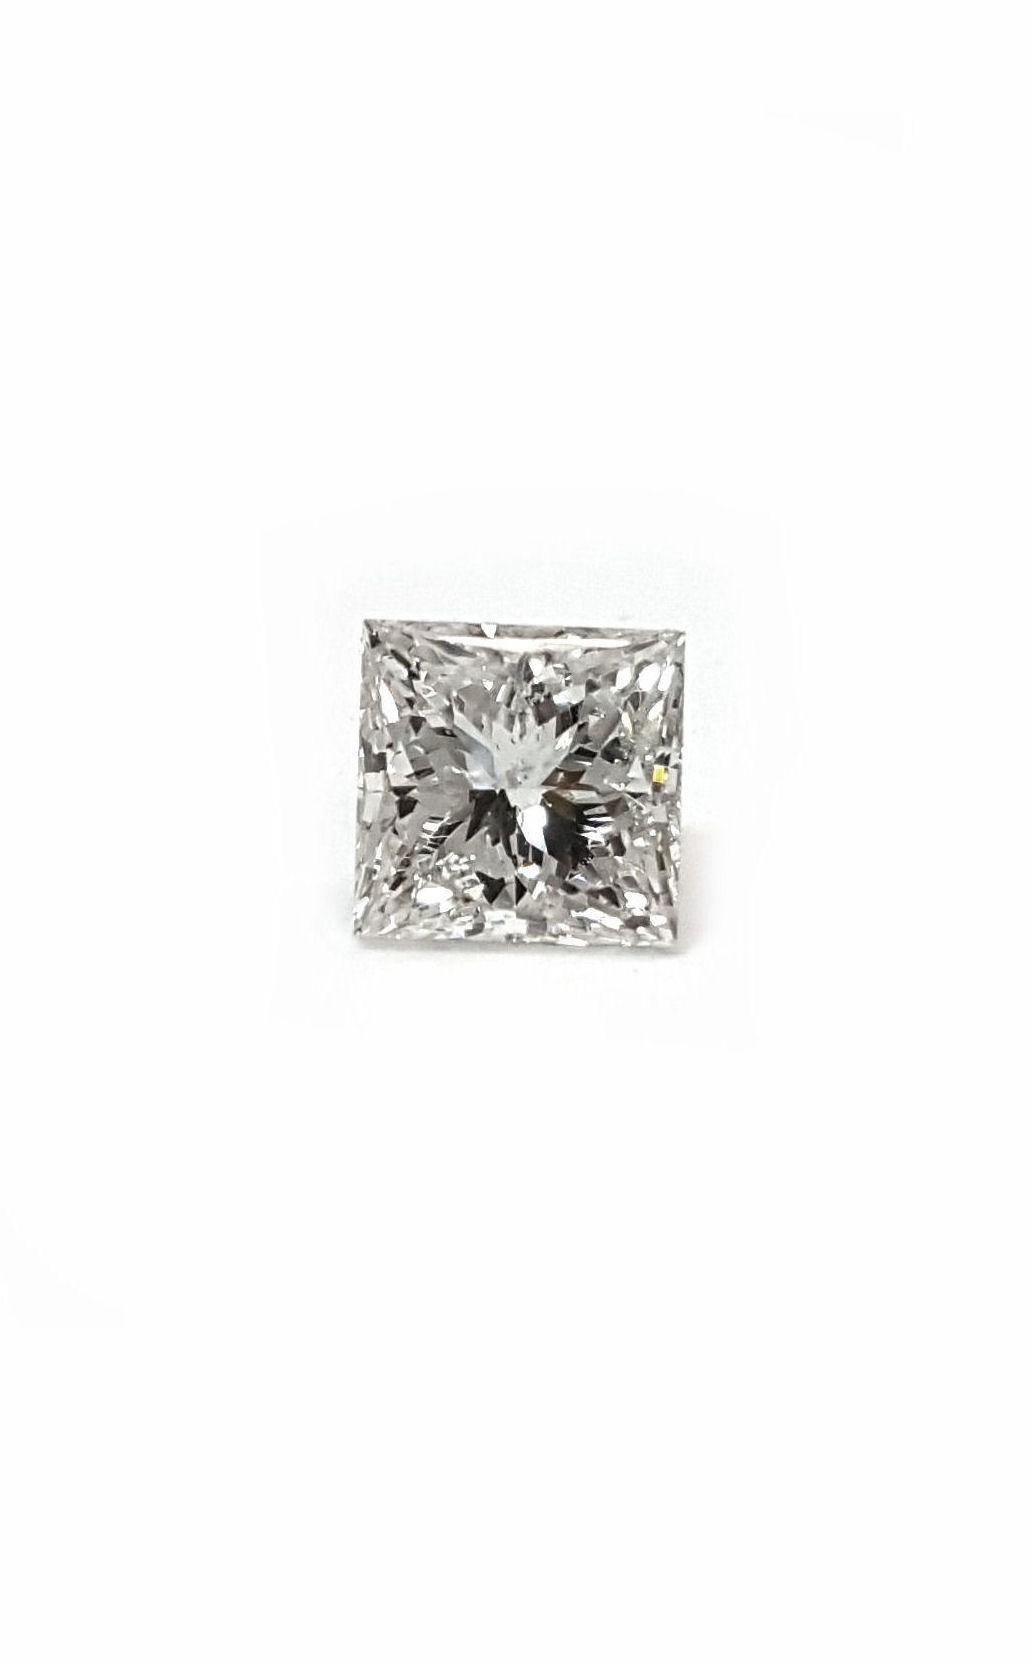 Princess Cut Diamond, 62pts. Natural Stone, G SI2 Quality GIA Report